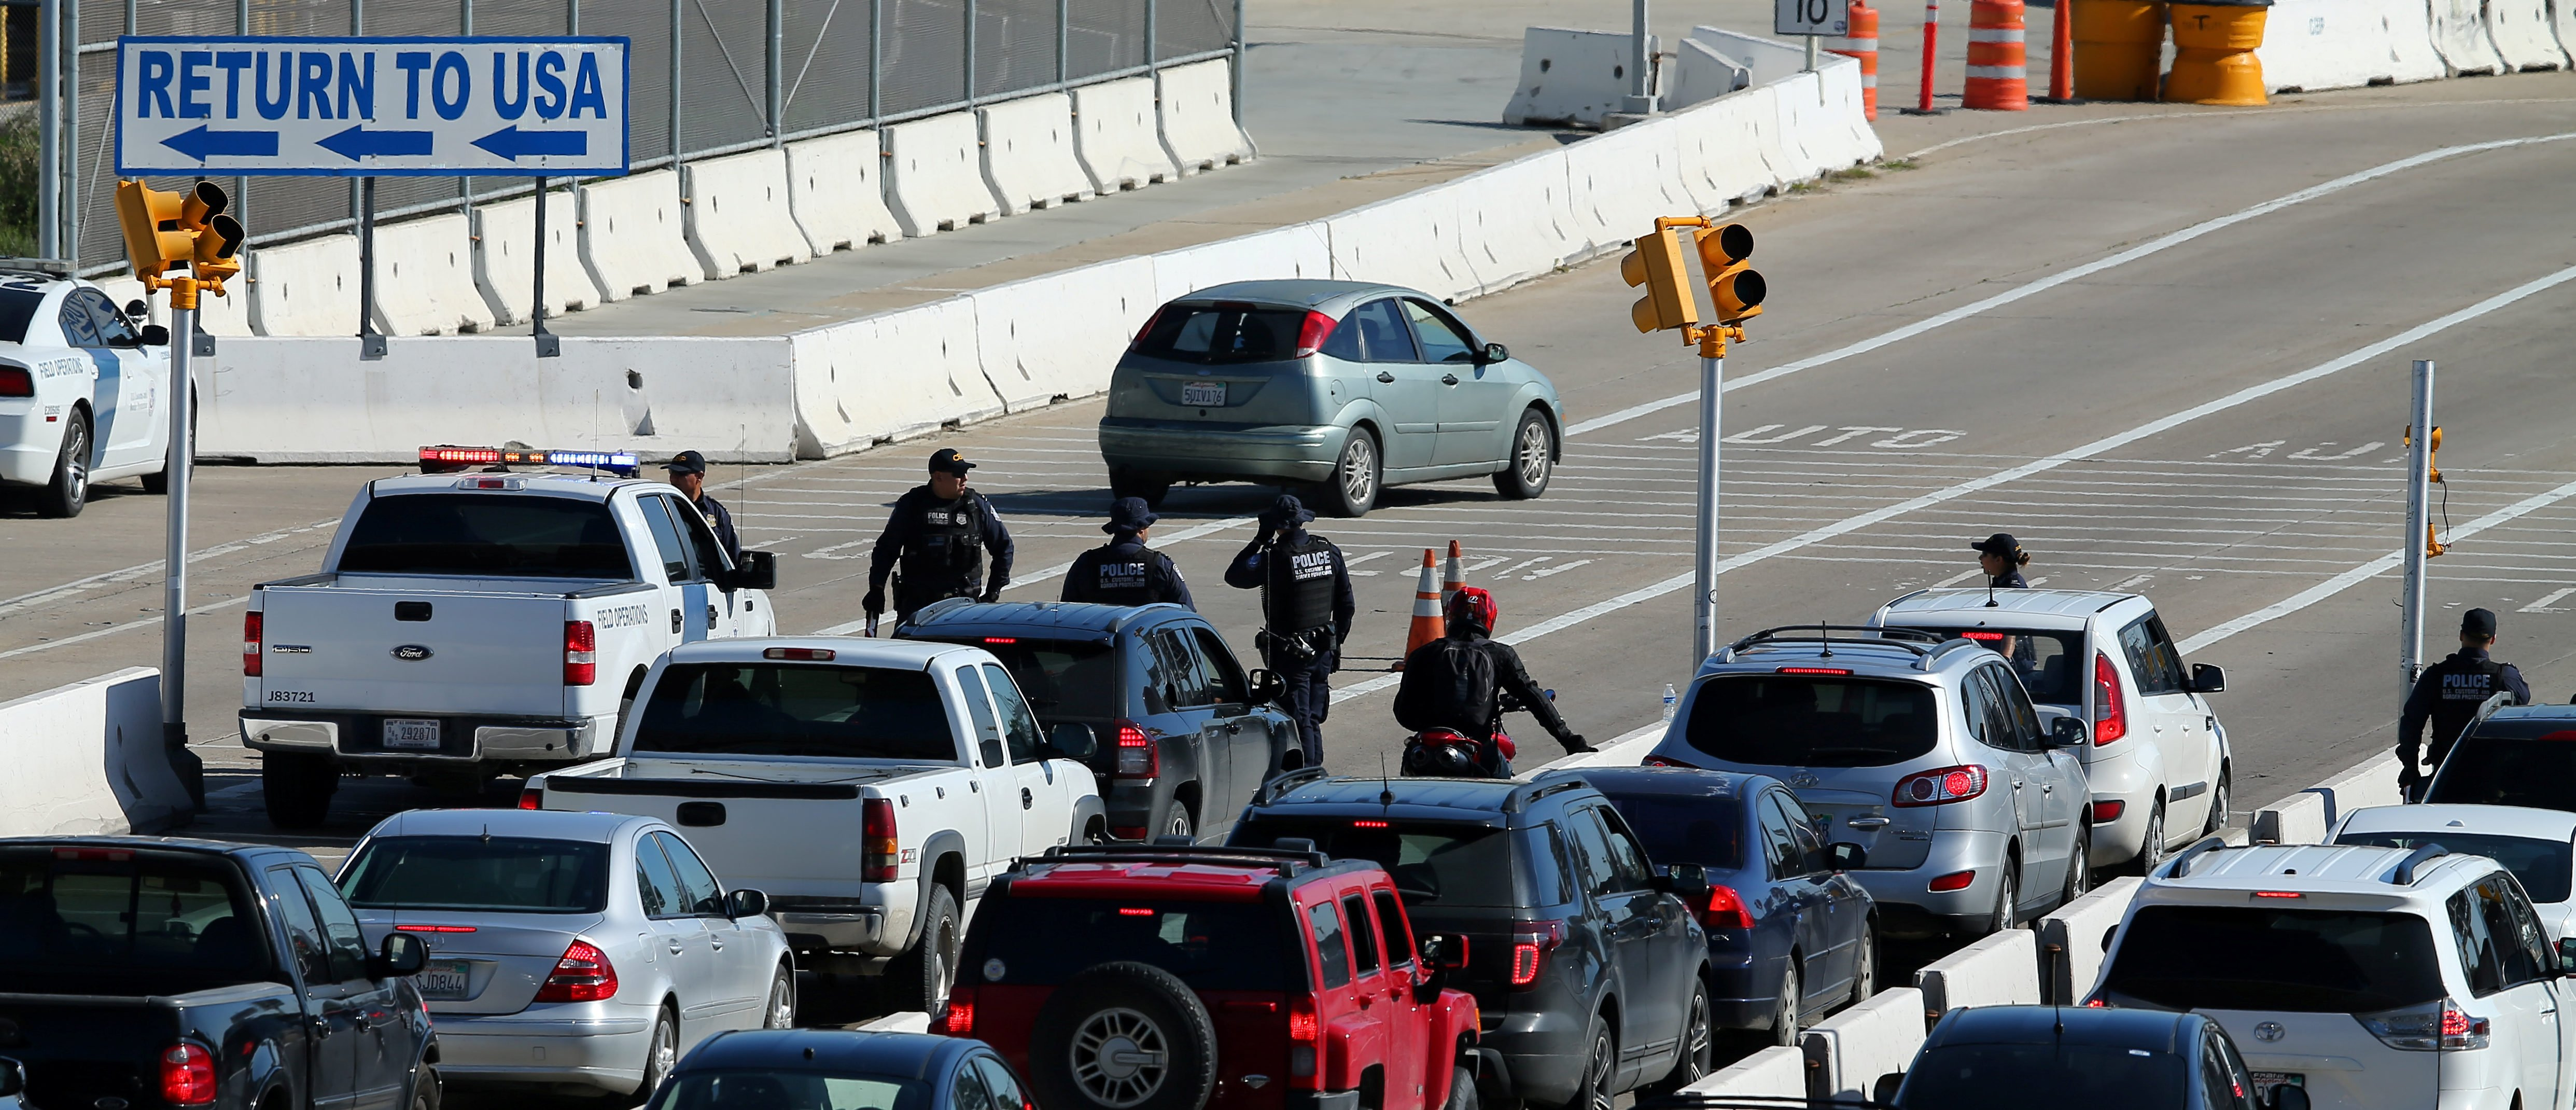 U.S. Customs and Border Patrol agents stop traffic heading into Mexico to check vehicles leaving the country in San Ysidro, California, U.S., January 25, 2017.   REUTERS/Mike Blake